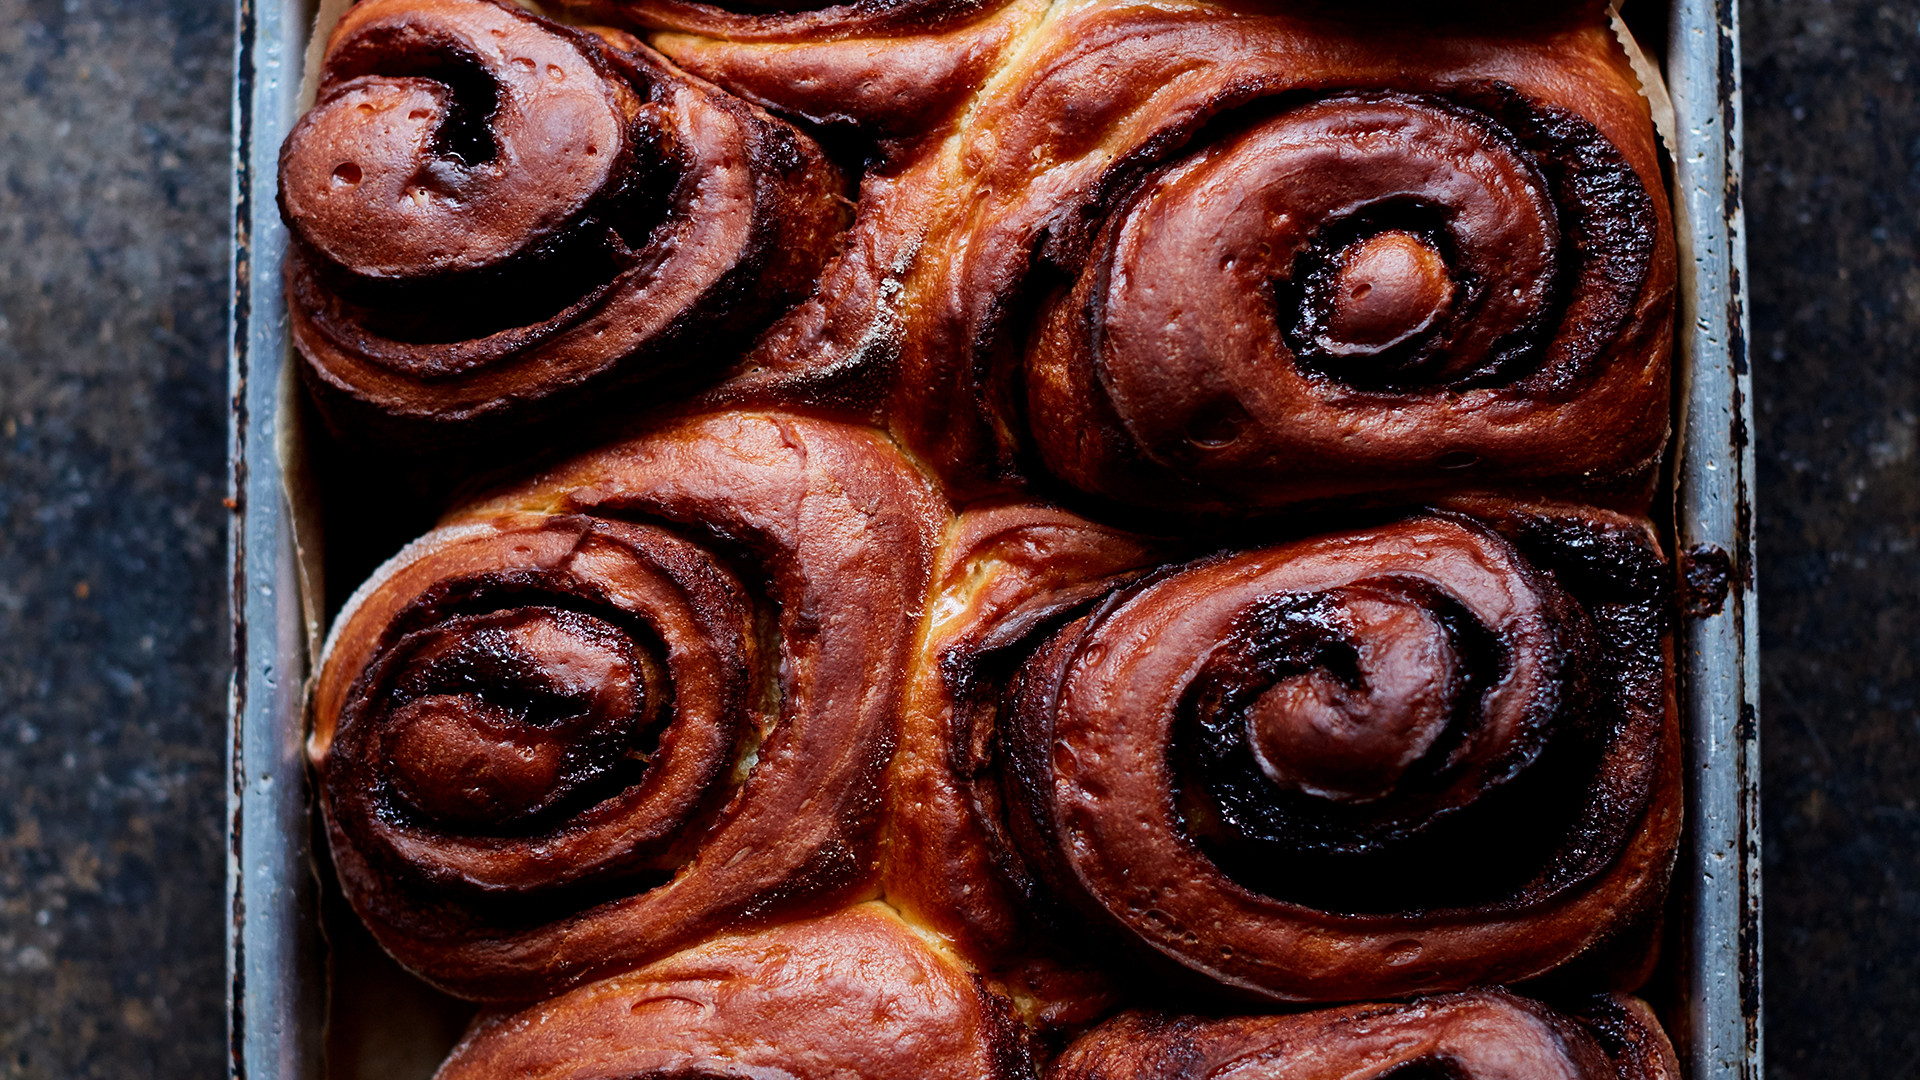 Cinnamon buns at Levan in Peckham